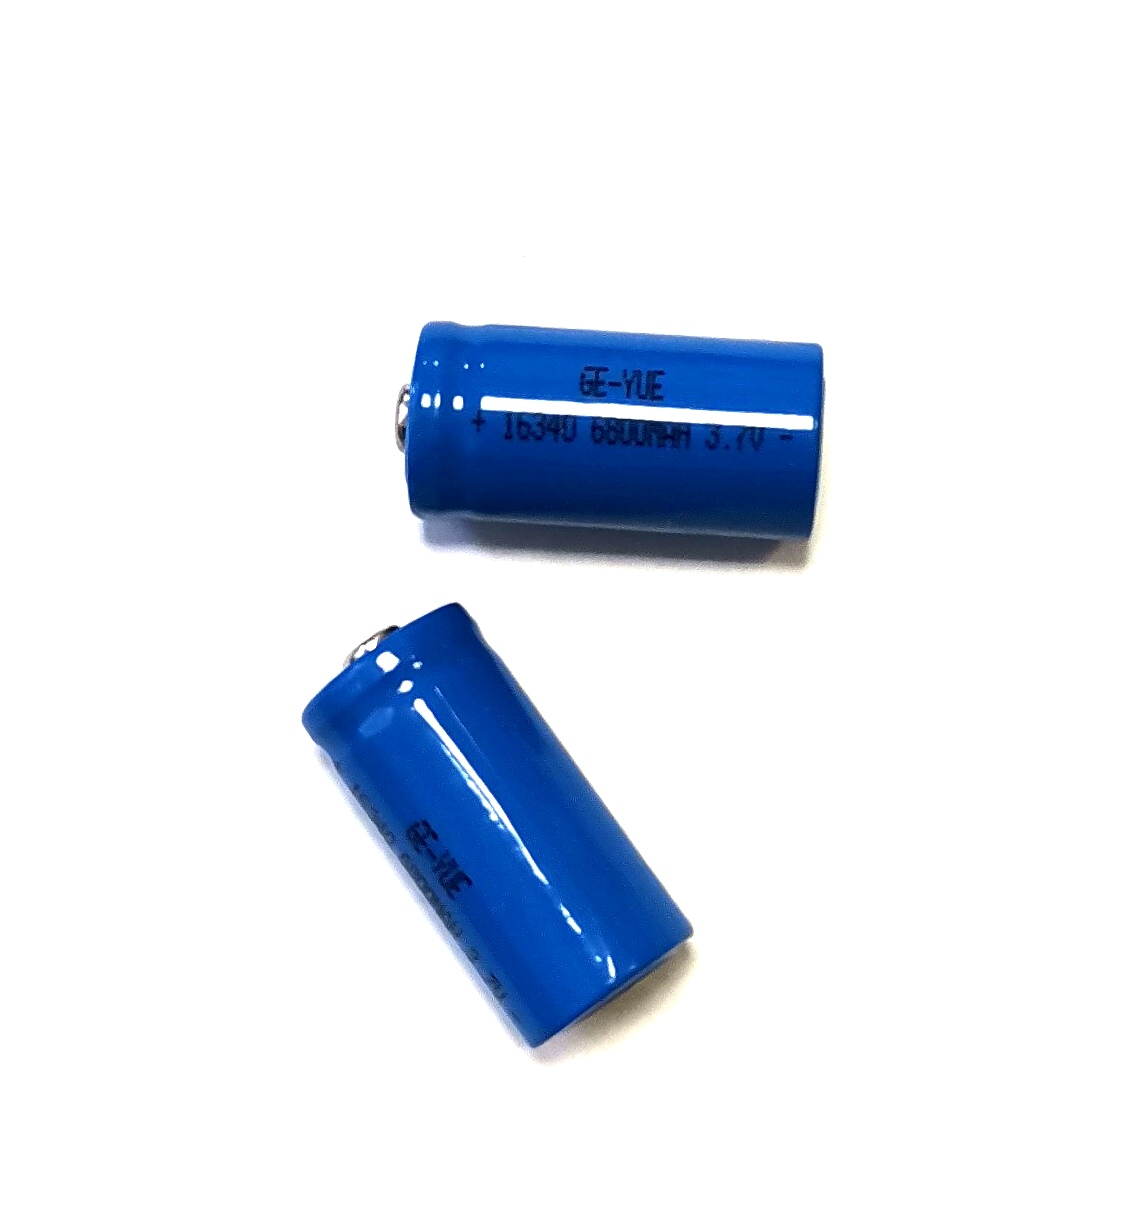 Li-ion 16340 ART CR123 (3.7V 1800mAh, реально 300mAh)